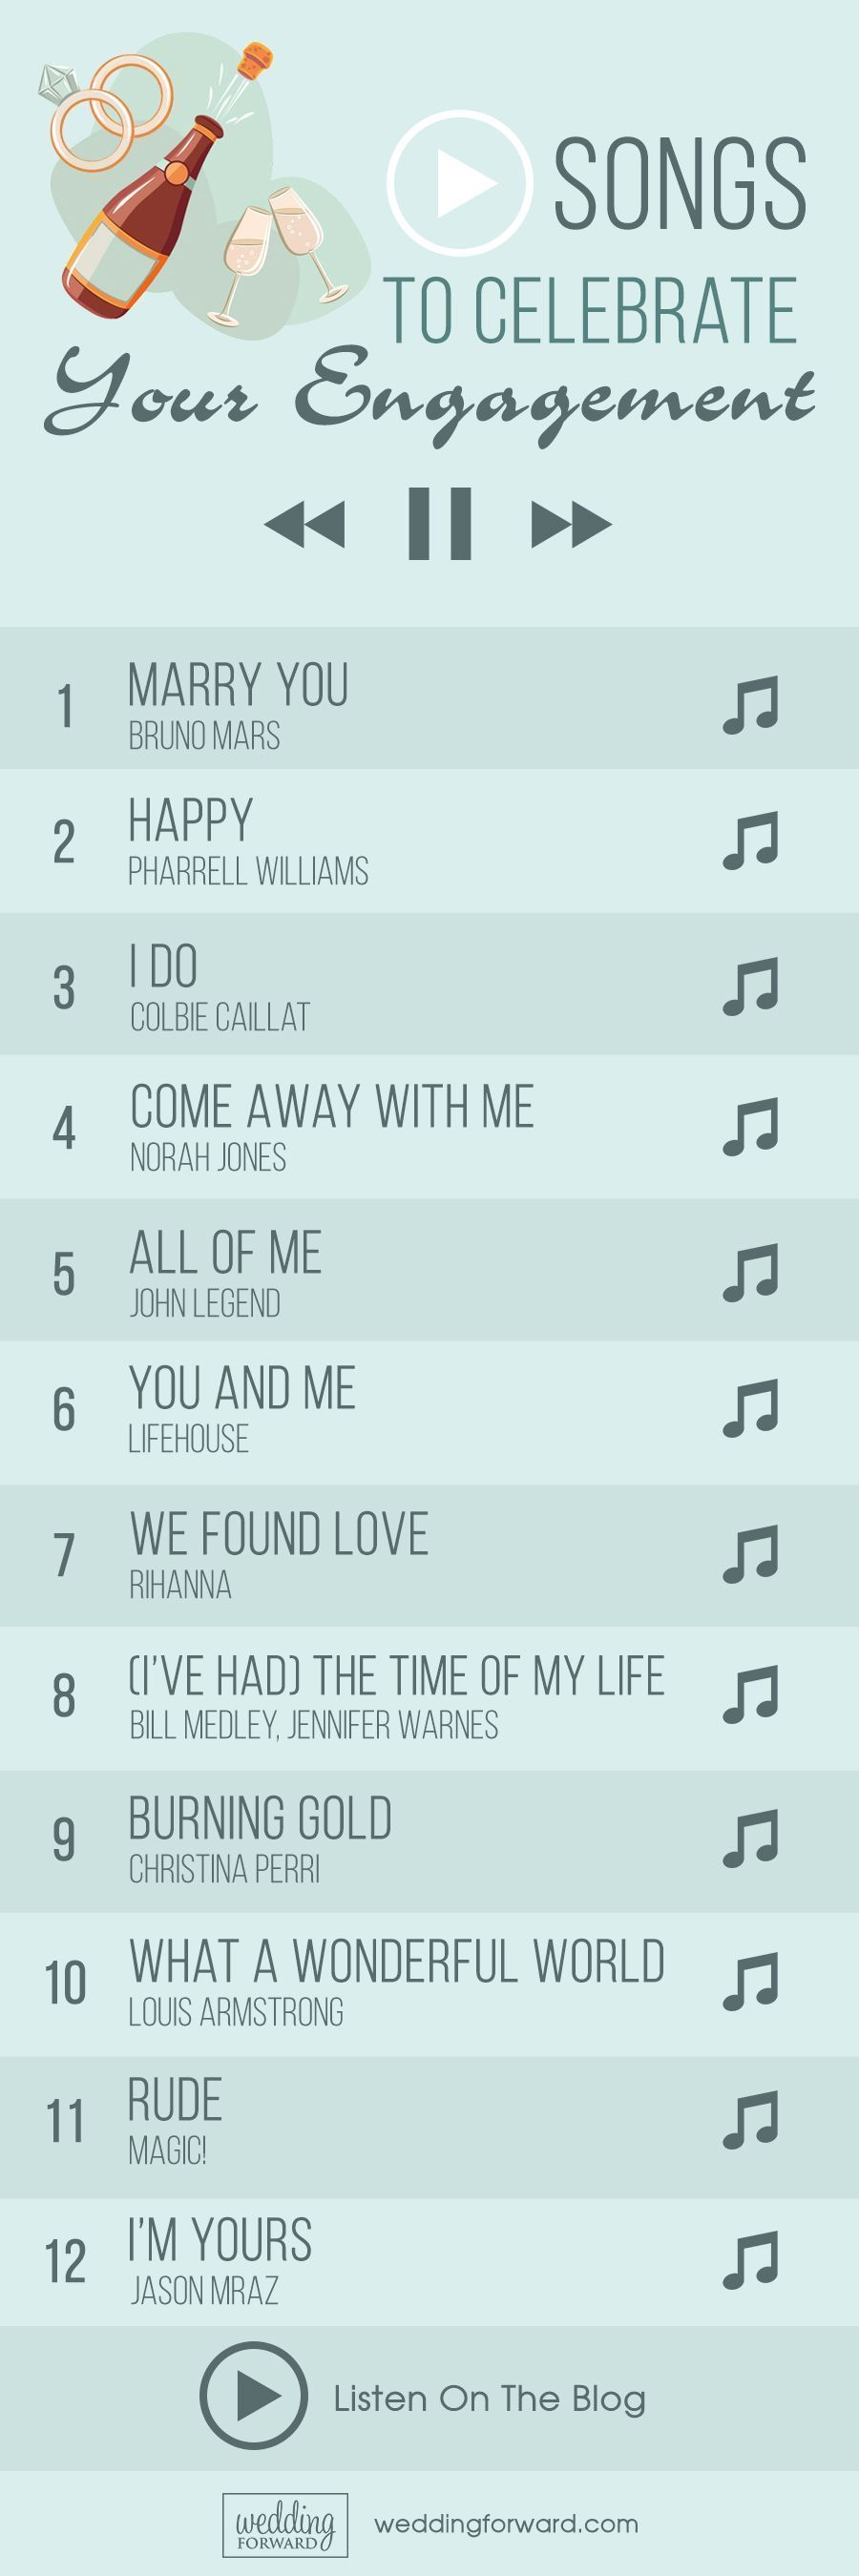 65 Top Engagement Songs For A Celebration | Wedding Forward